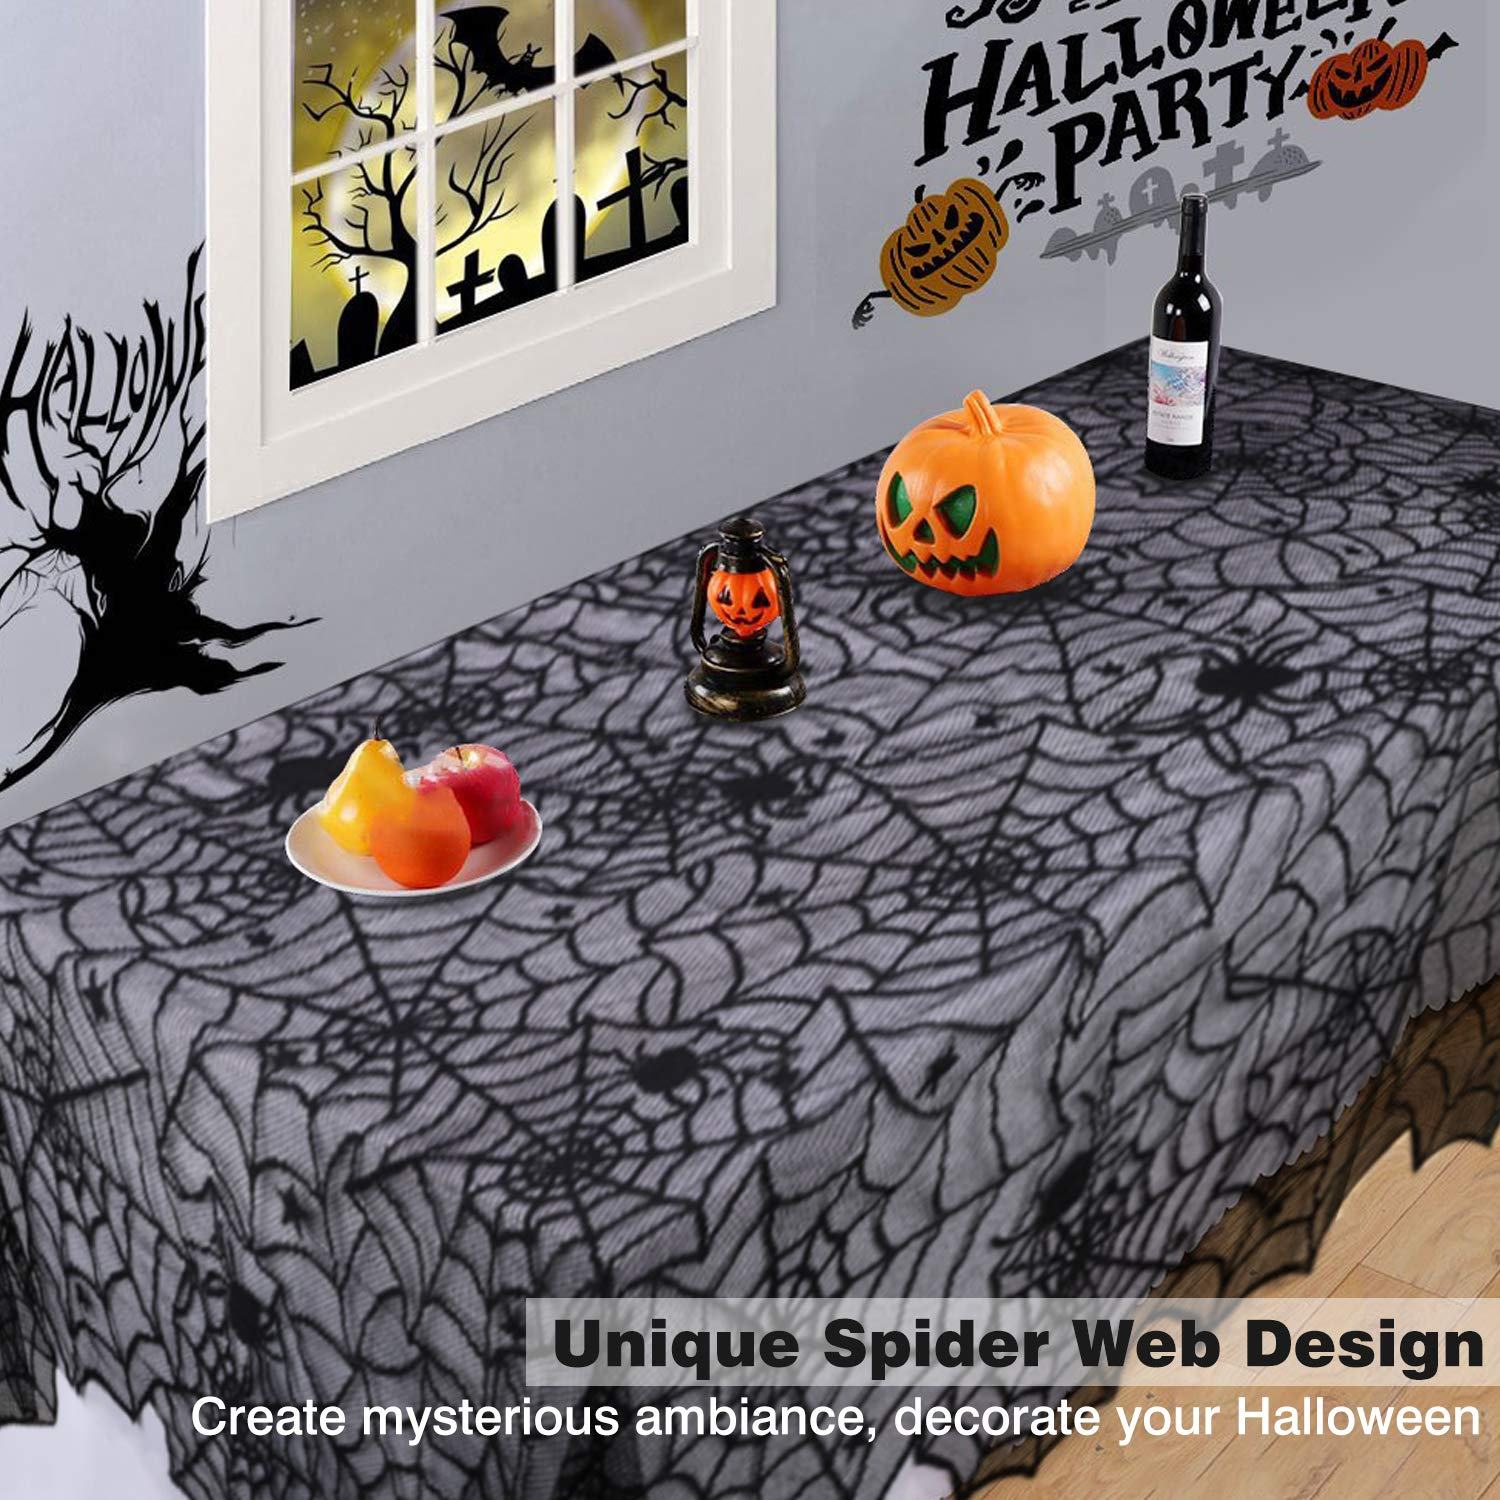 Halloween Spider Web Pattern Table Cover Black Lace Tassel Trim Decorative Tabletop Fireplace Window Cloth for Dinner Party Kitchen Lewondr Fringed Triangle Edge Multifunctional Tablecloth